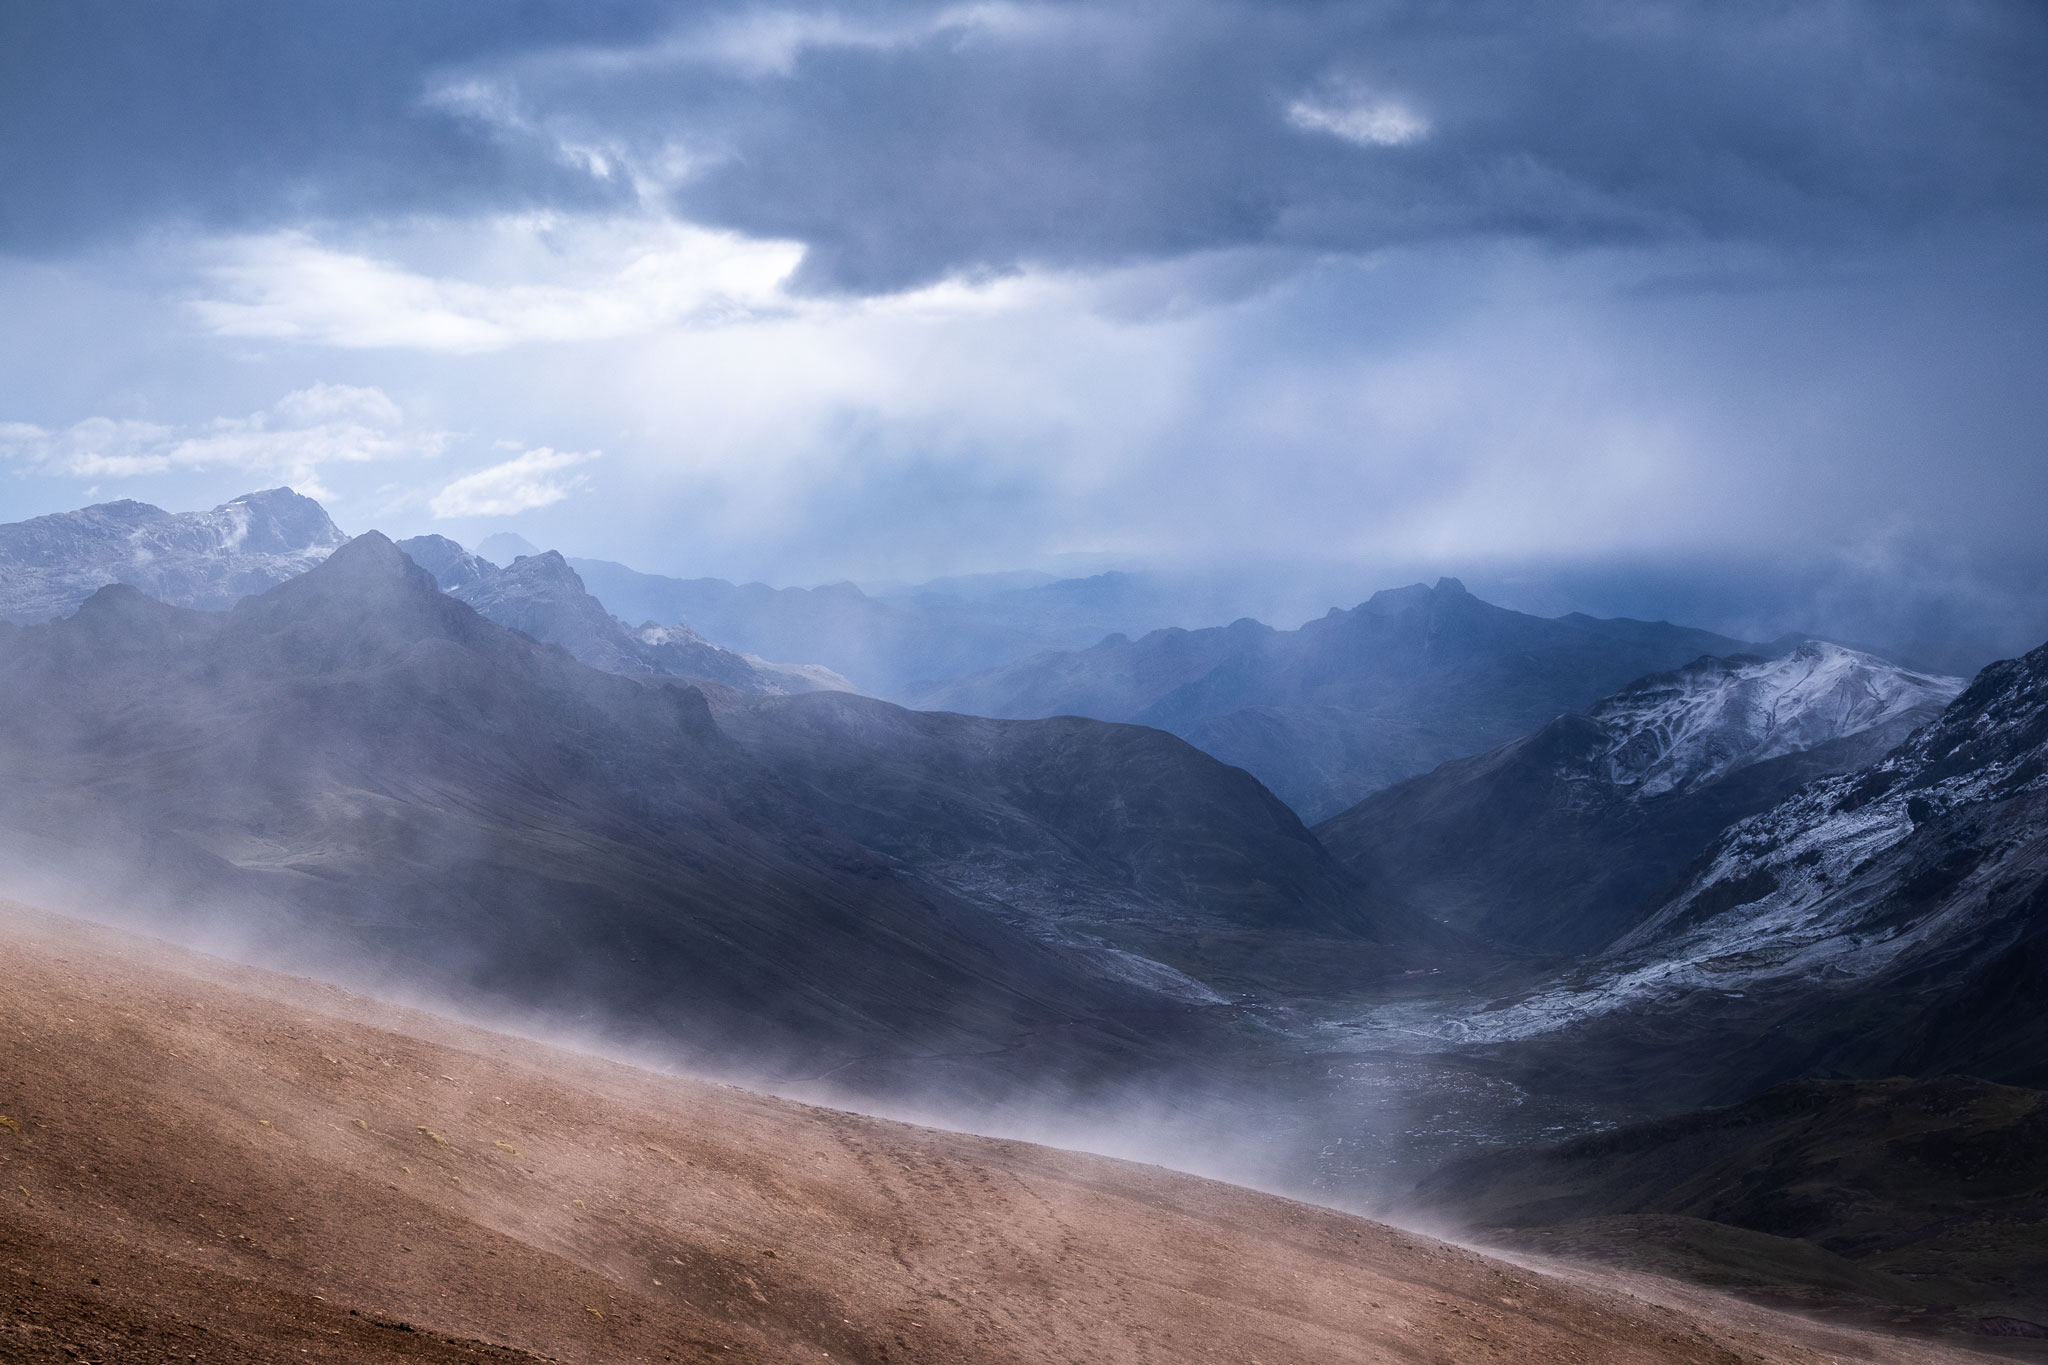 MOODY ANDEAN LANDSCAPE